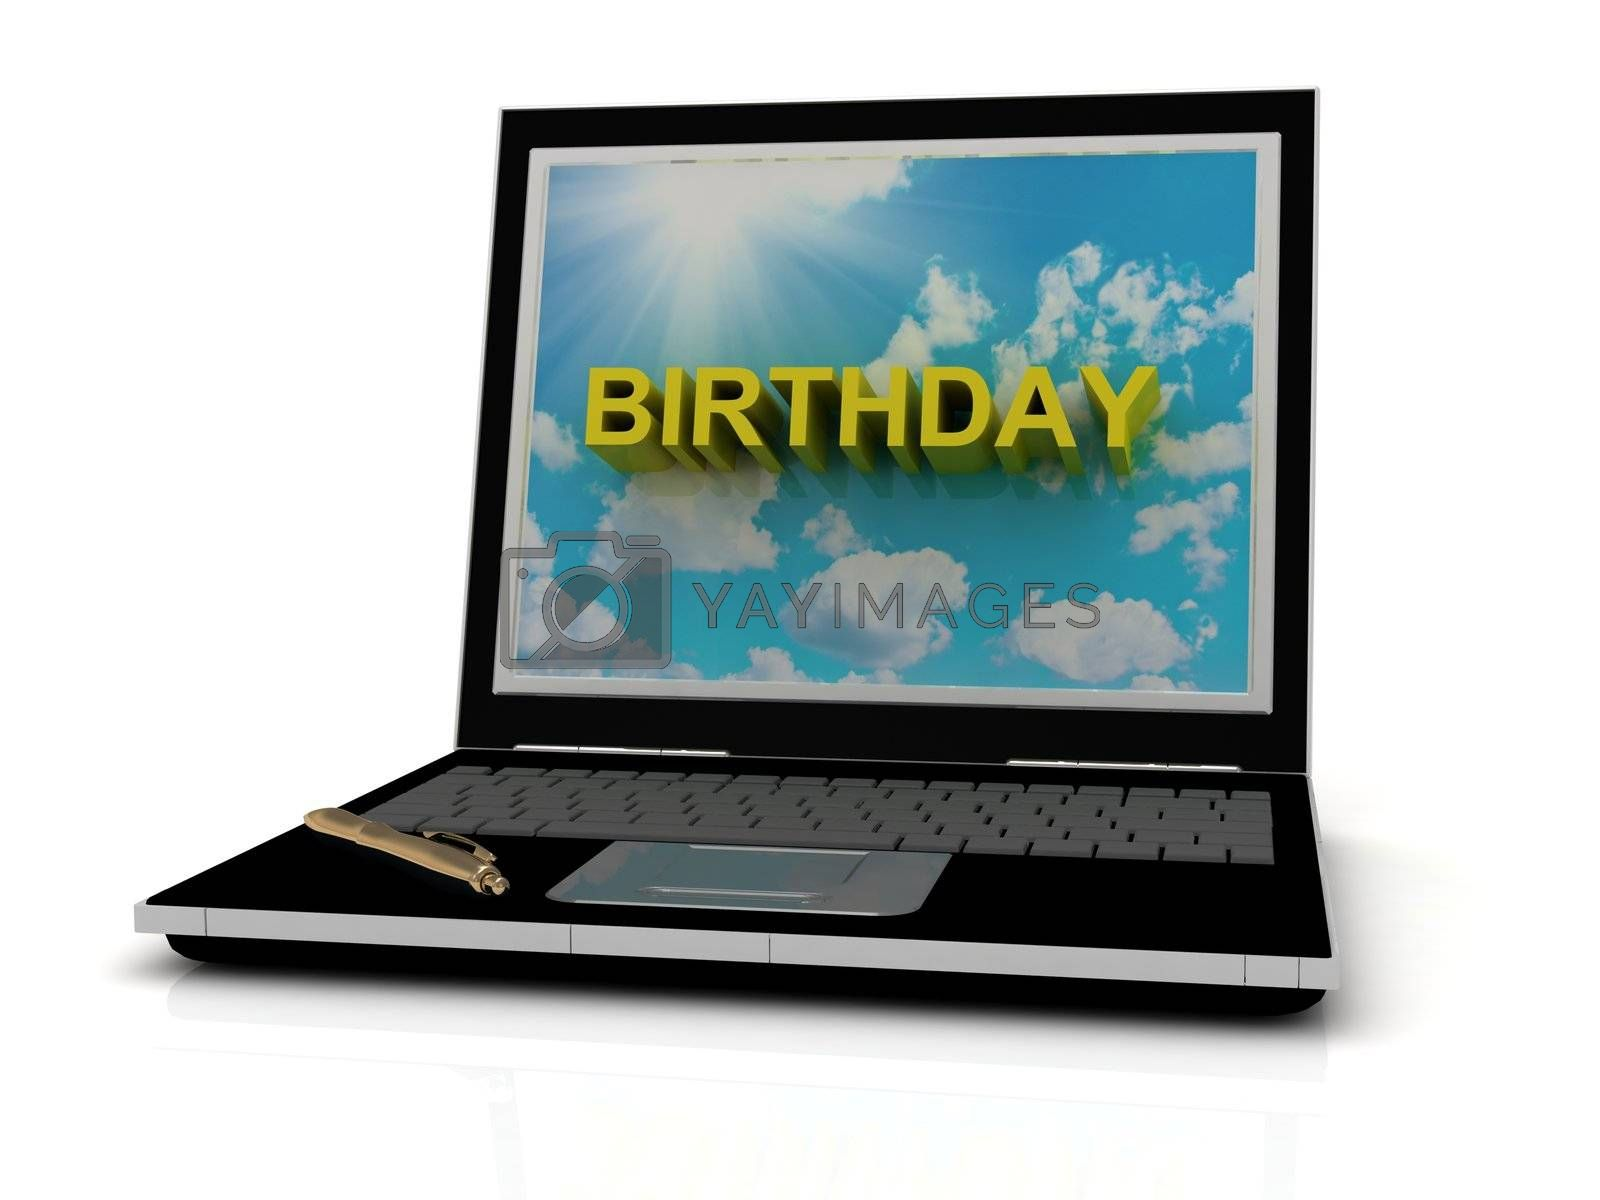 BIRTHDAY sign on laptop screen of the yellow letters on a background of sky, sun and clouds